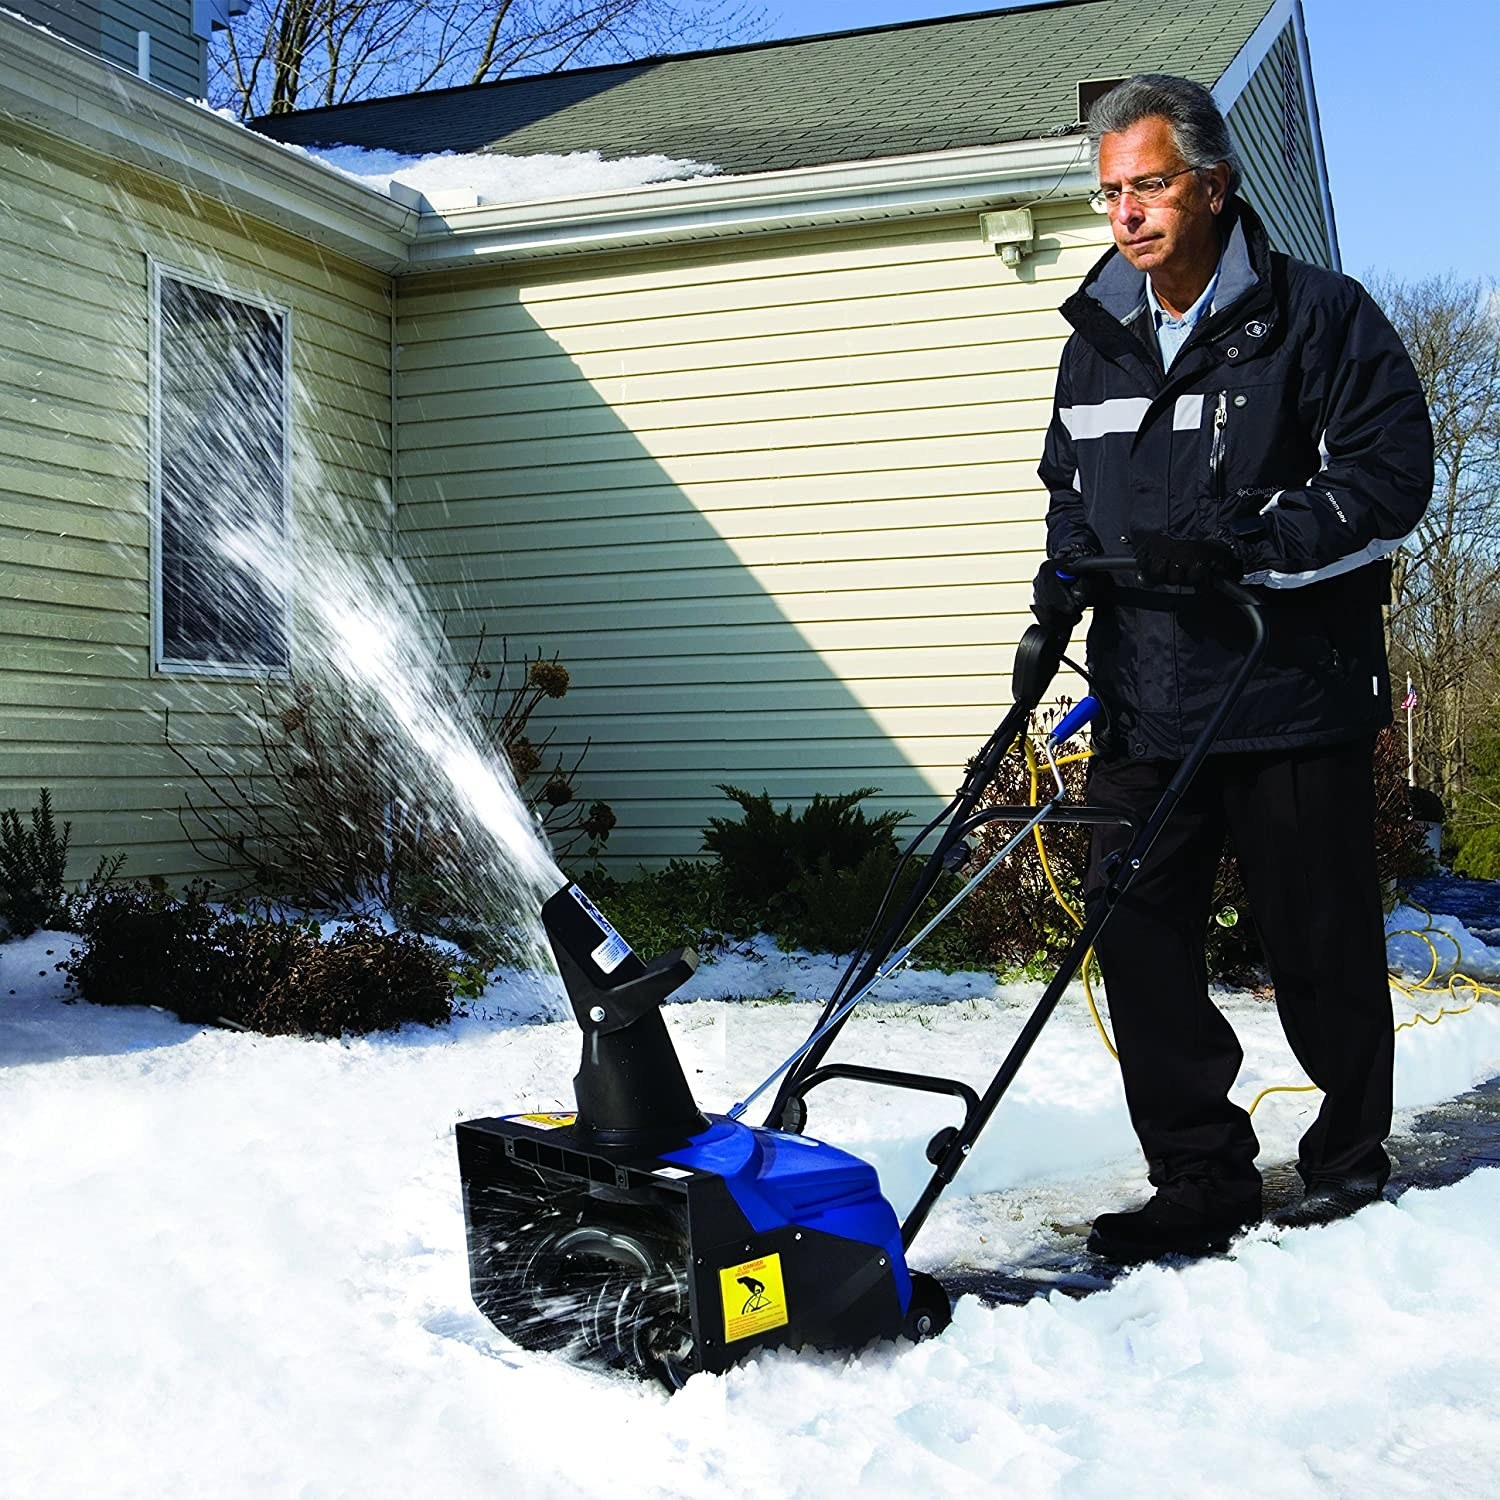 A person using the snow thrower on their lawn